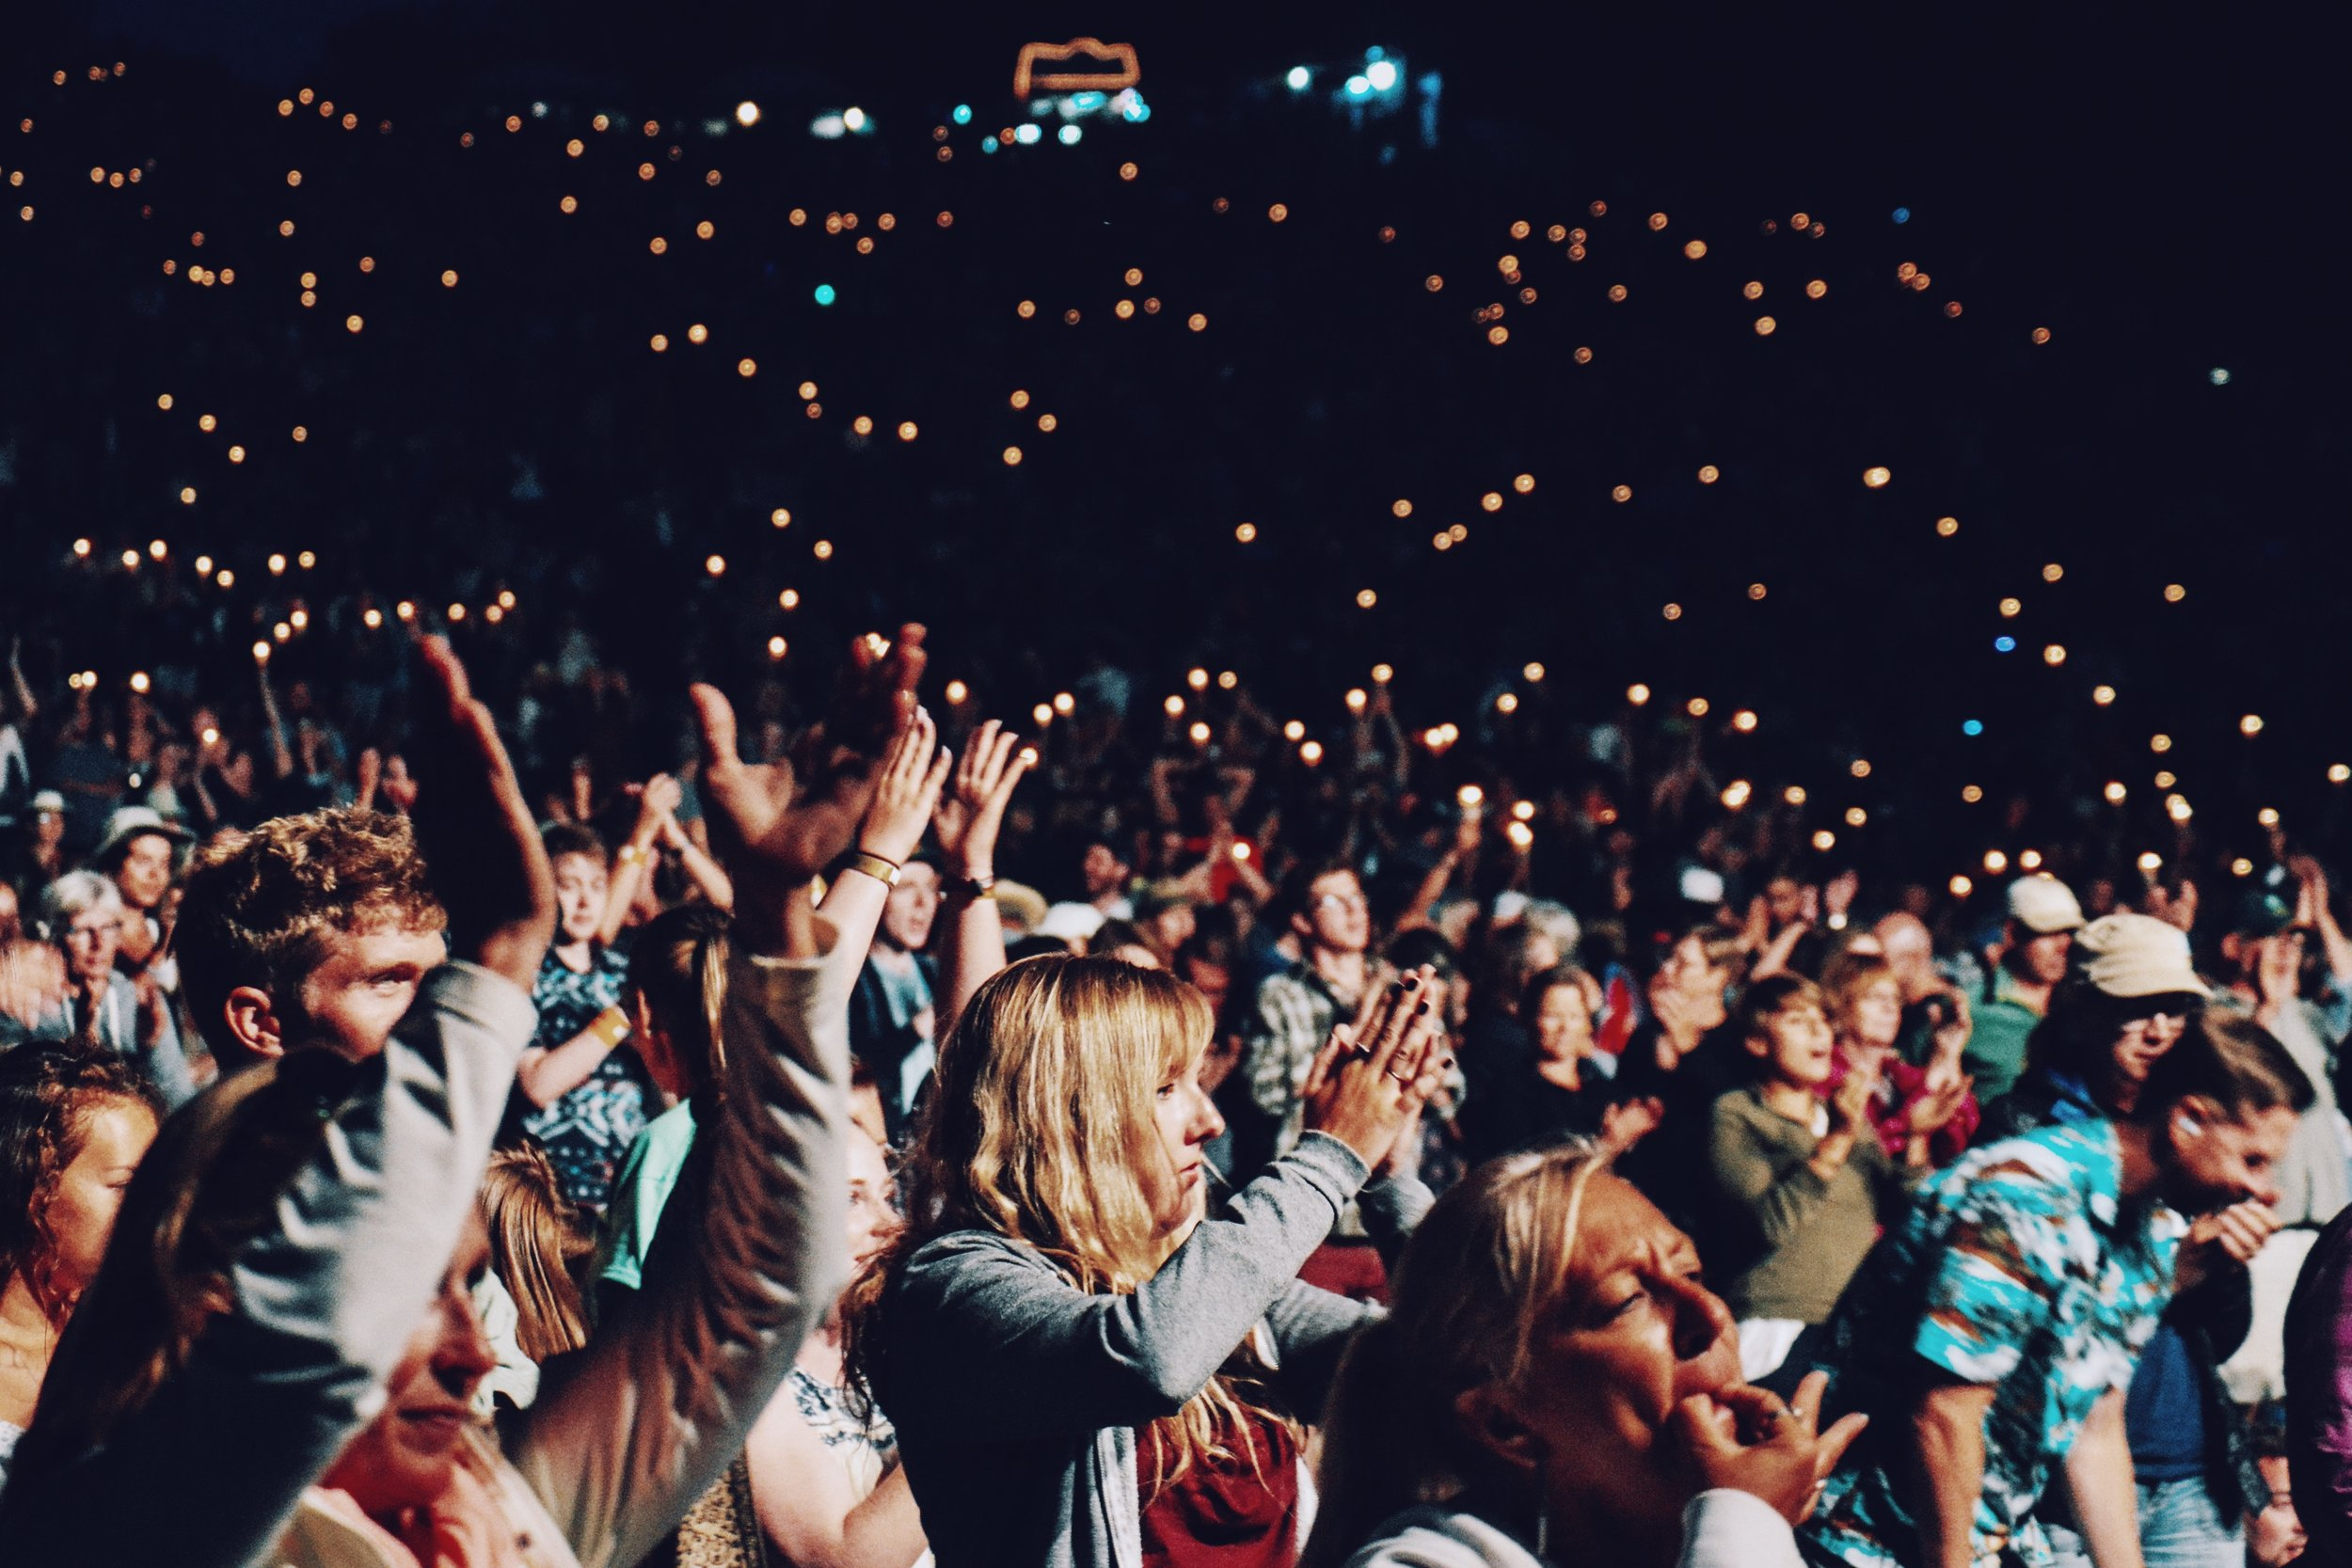 100+ Customer Experience Conferences in 2019: The #1 CX Event Guide   Download Full List